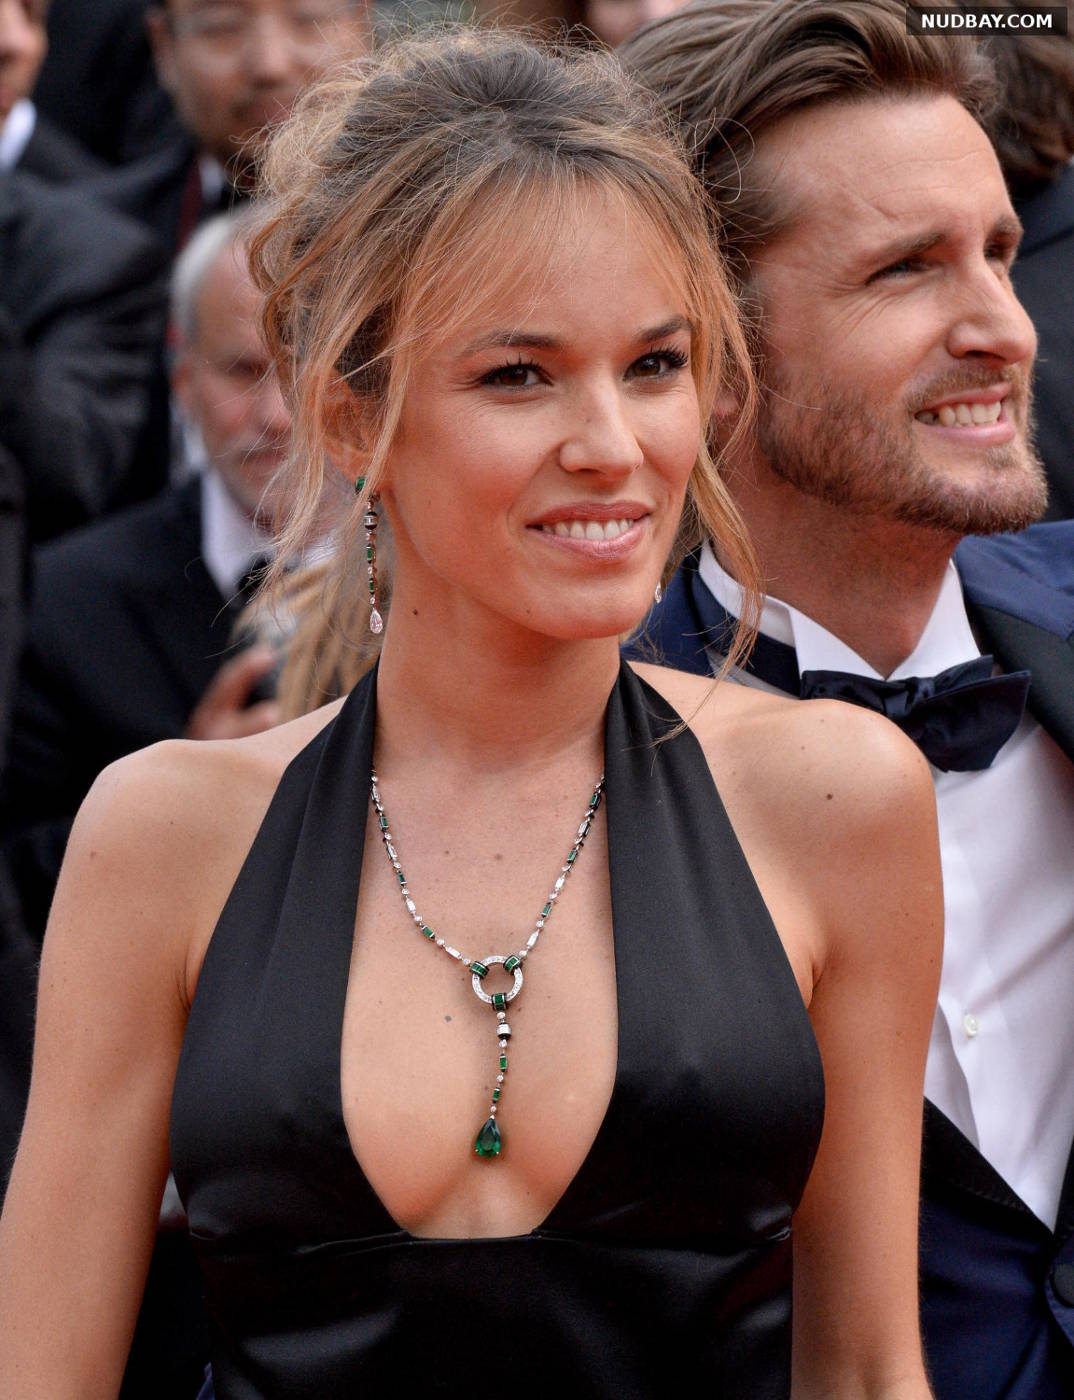 Elodie Fontan cleavage at 72nd Cannes Film Festival May 21 2019